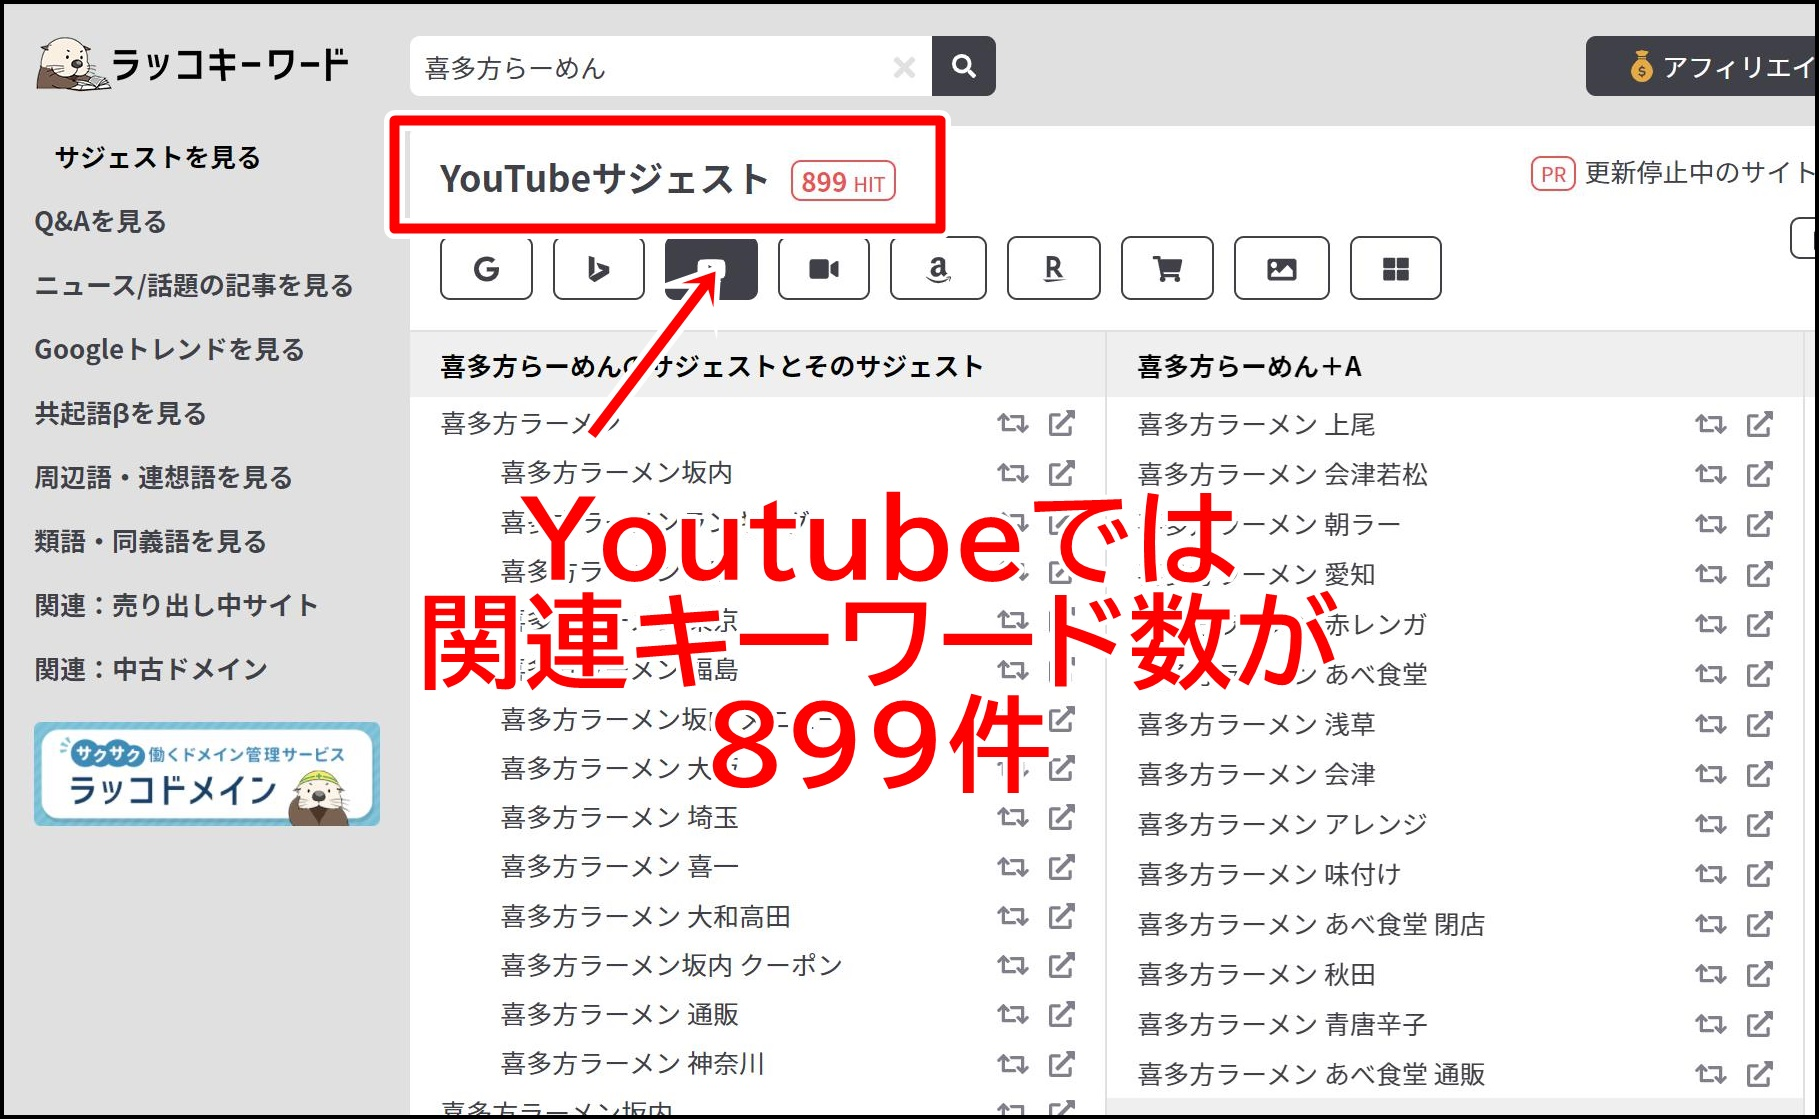 Youtube検索の増加